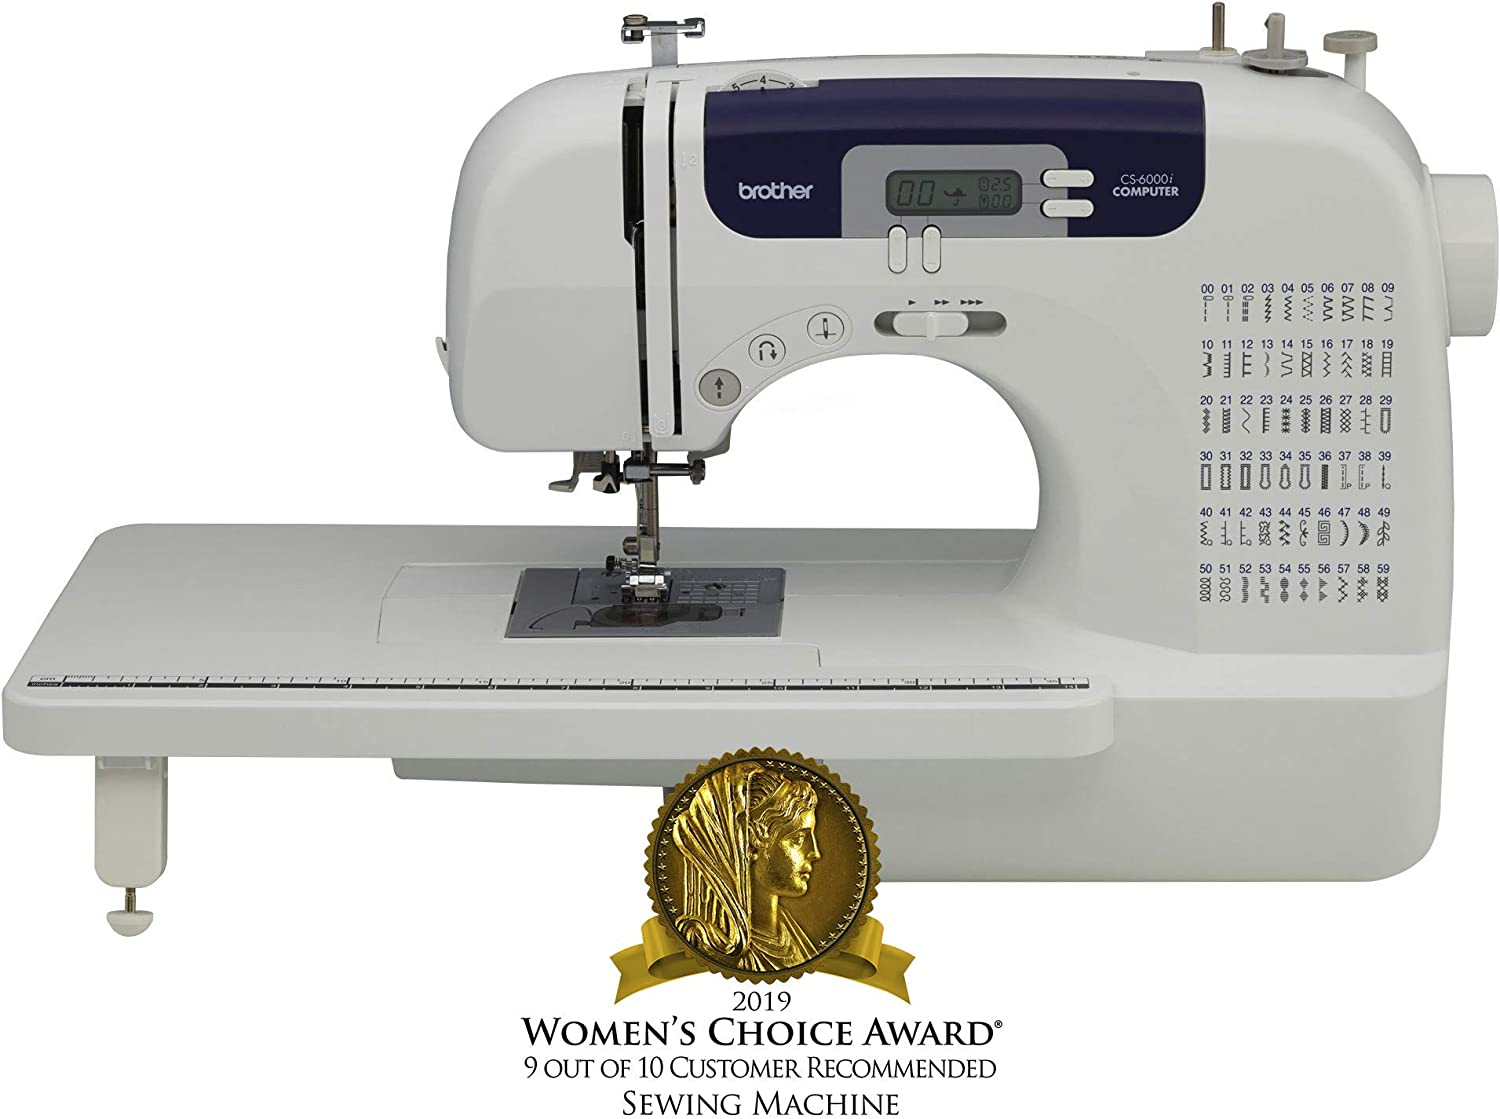 Brother Sewing and Quilting Machine, CS6000i, 60 Built-In Stitches, 7 styles of 1-Step Auto-Size Buttonholes